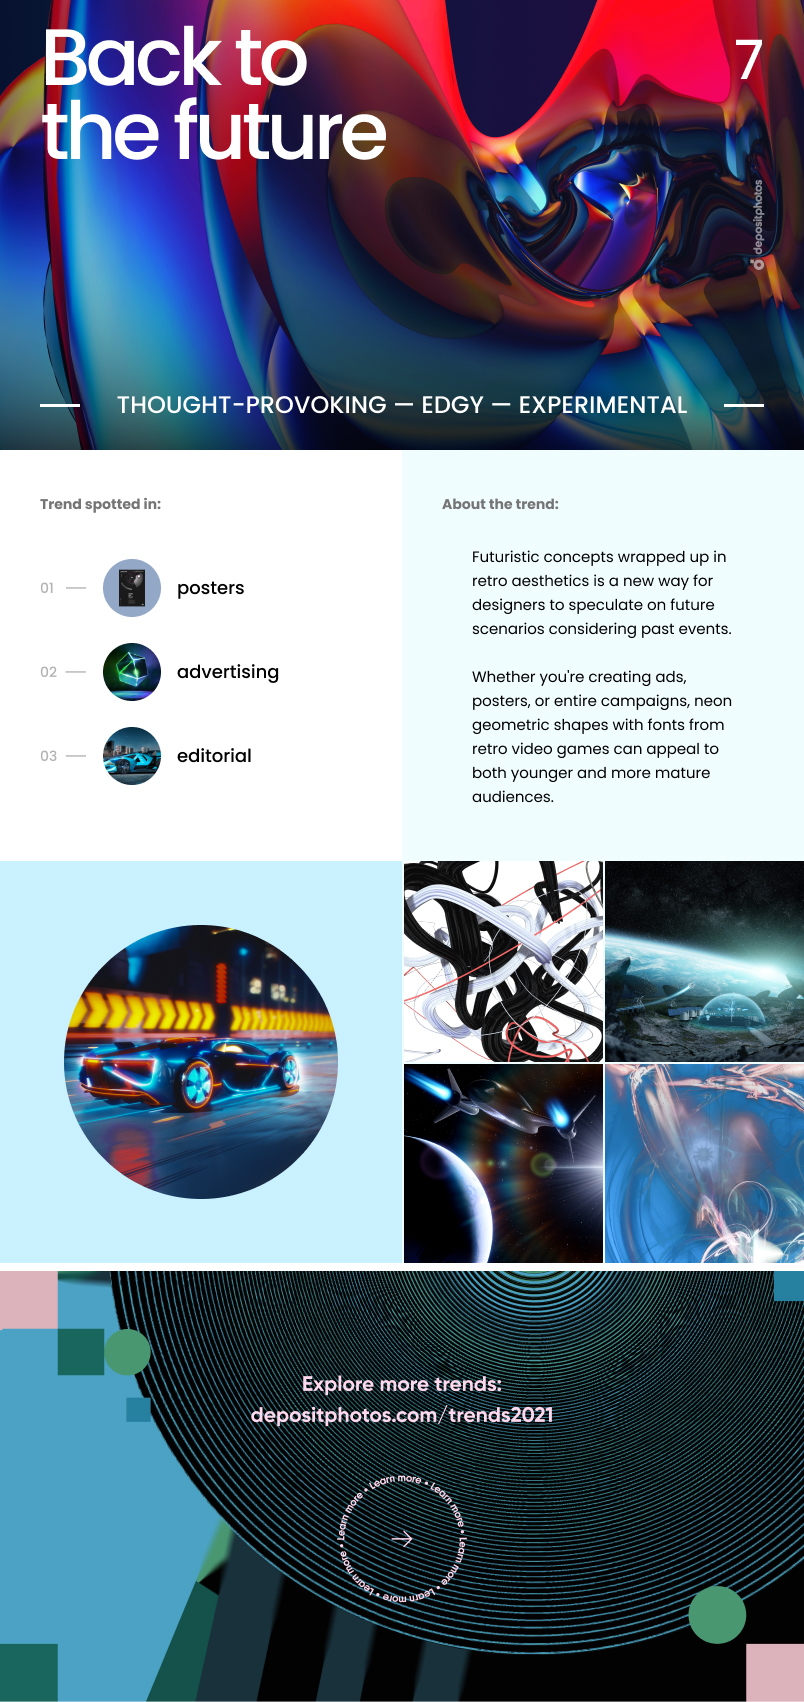 Top 7 Graphic Design Trends For 2021 - Back to the future